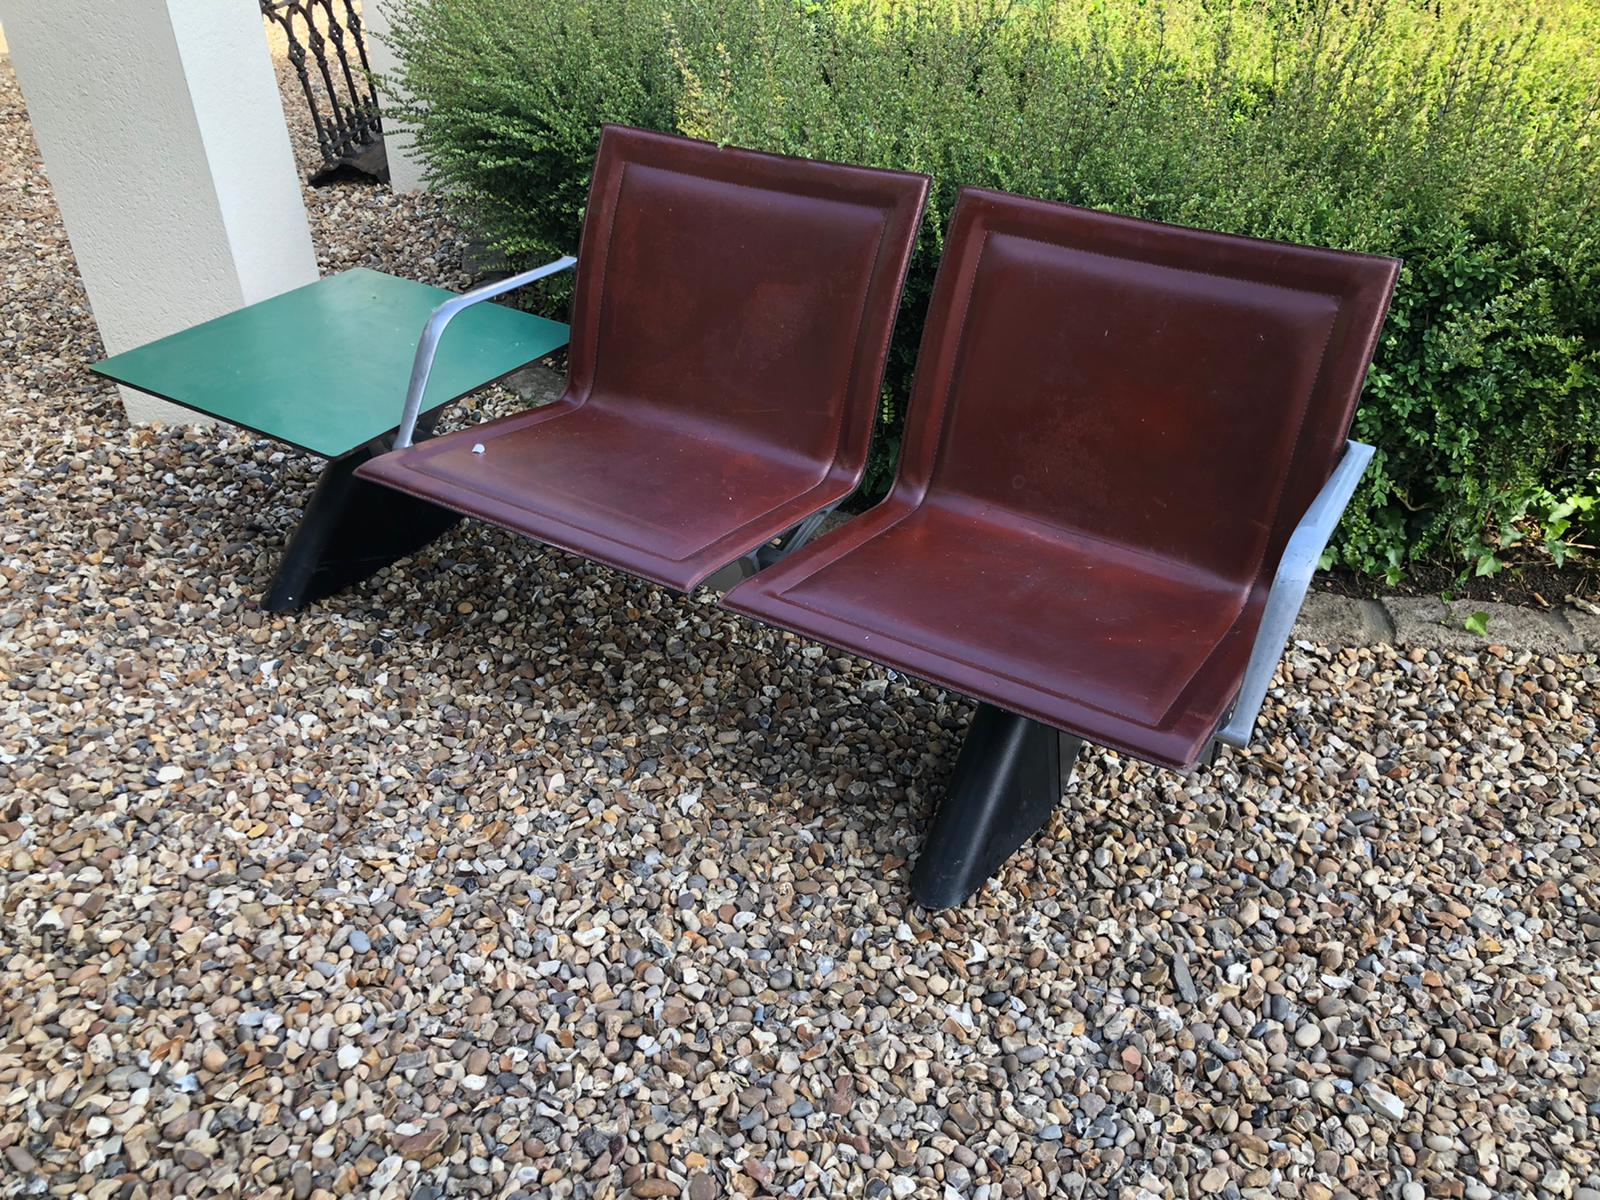 AN ITALIAN STEEL, ALUMINIUM AND LEATHER TWO SEATER BENCH Brown leather covers with aluminium